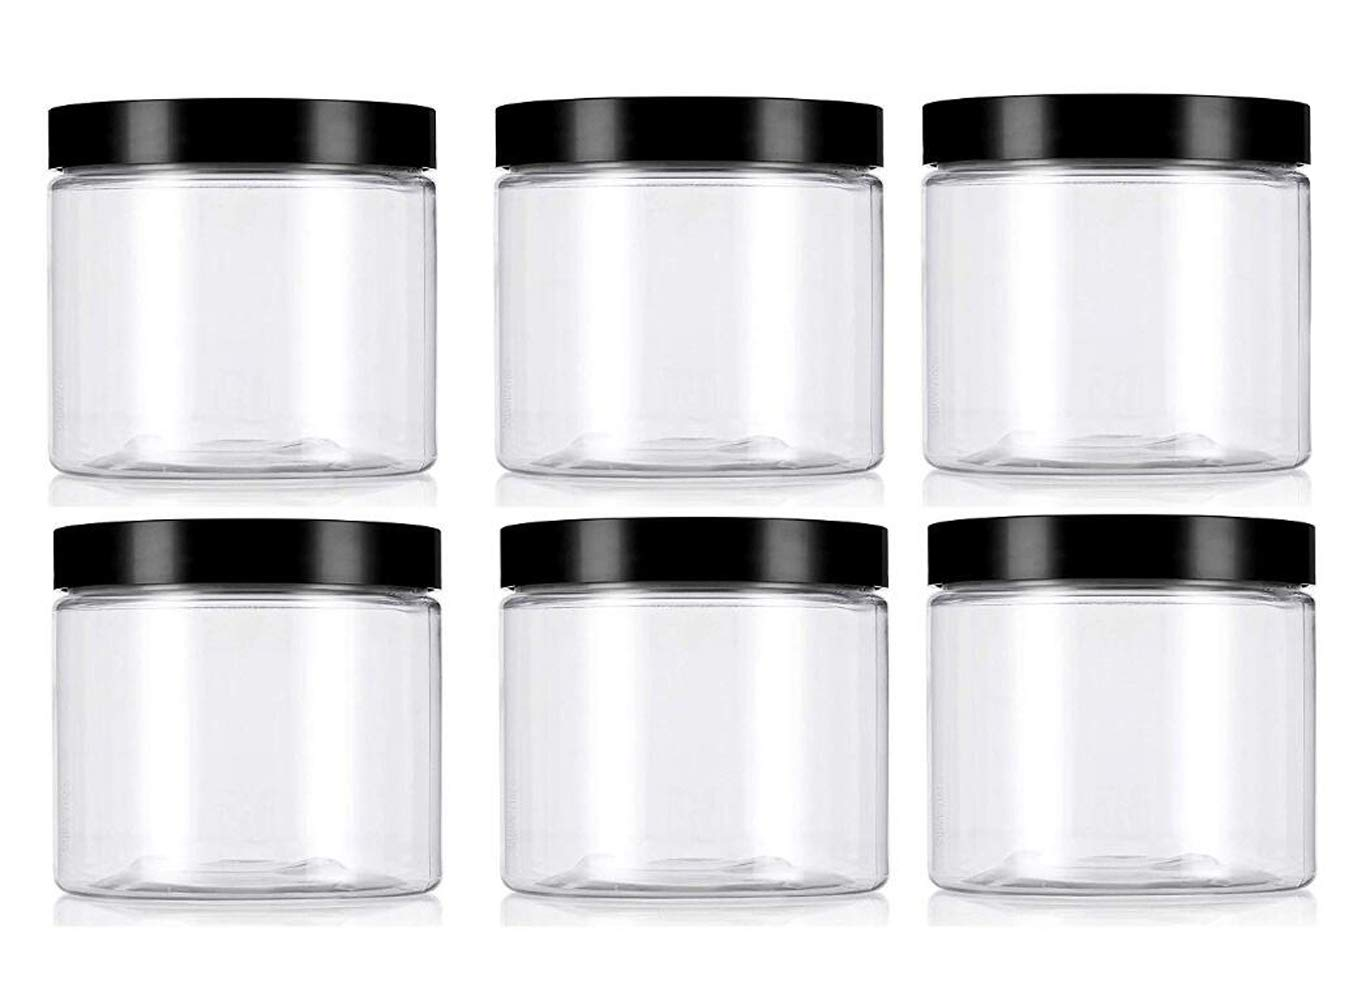 Clear 8Oz / 250g PET Plastic Refillable Jars Empty Cosmetic Containers Cases with Black Lid Cream Lotion Box Ointments Bottle Food Bottle Makeup Pot Jar (6 Pack)